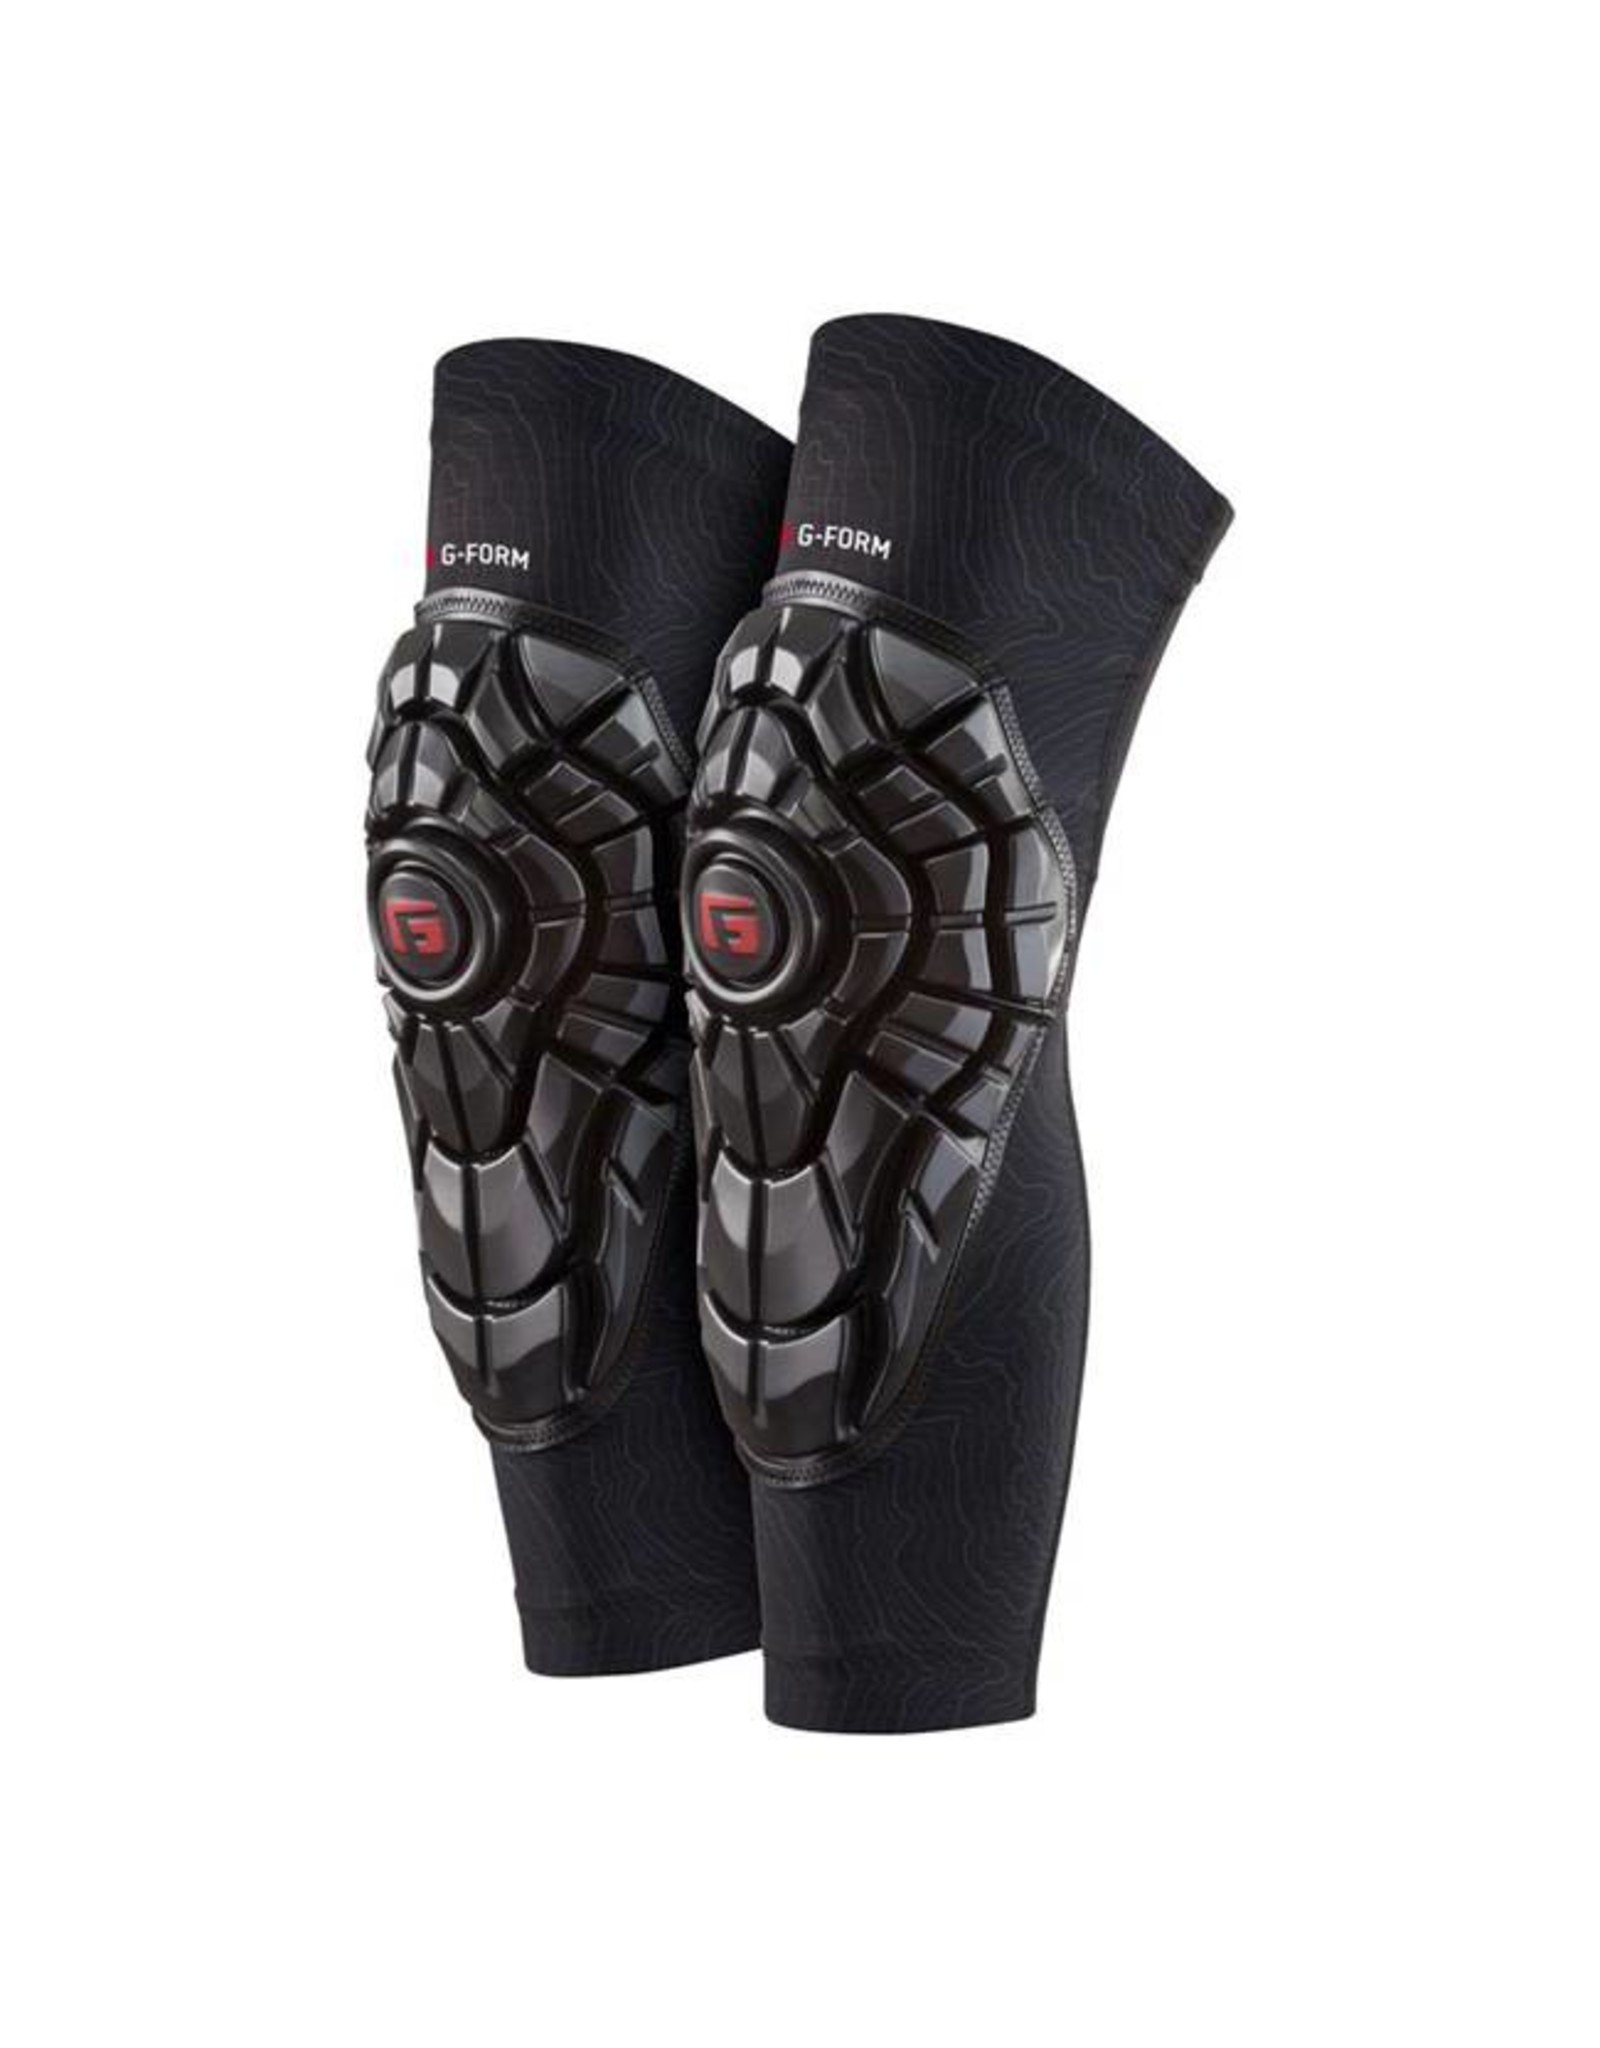 G-Form G-Form Elite Knee Pad: Black/Topo, LG